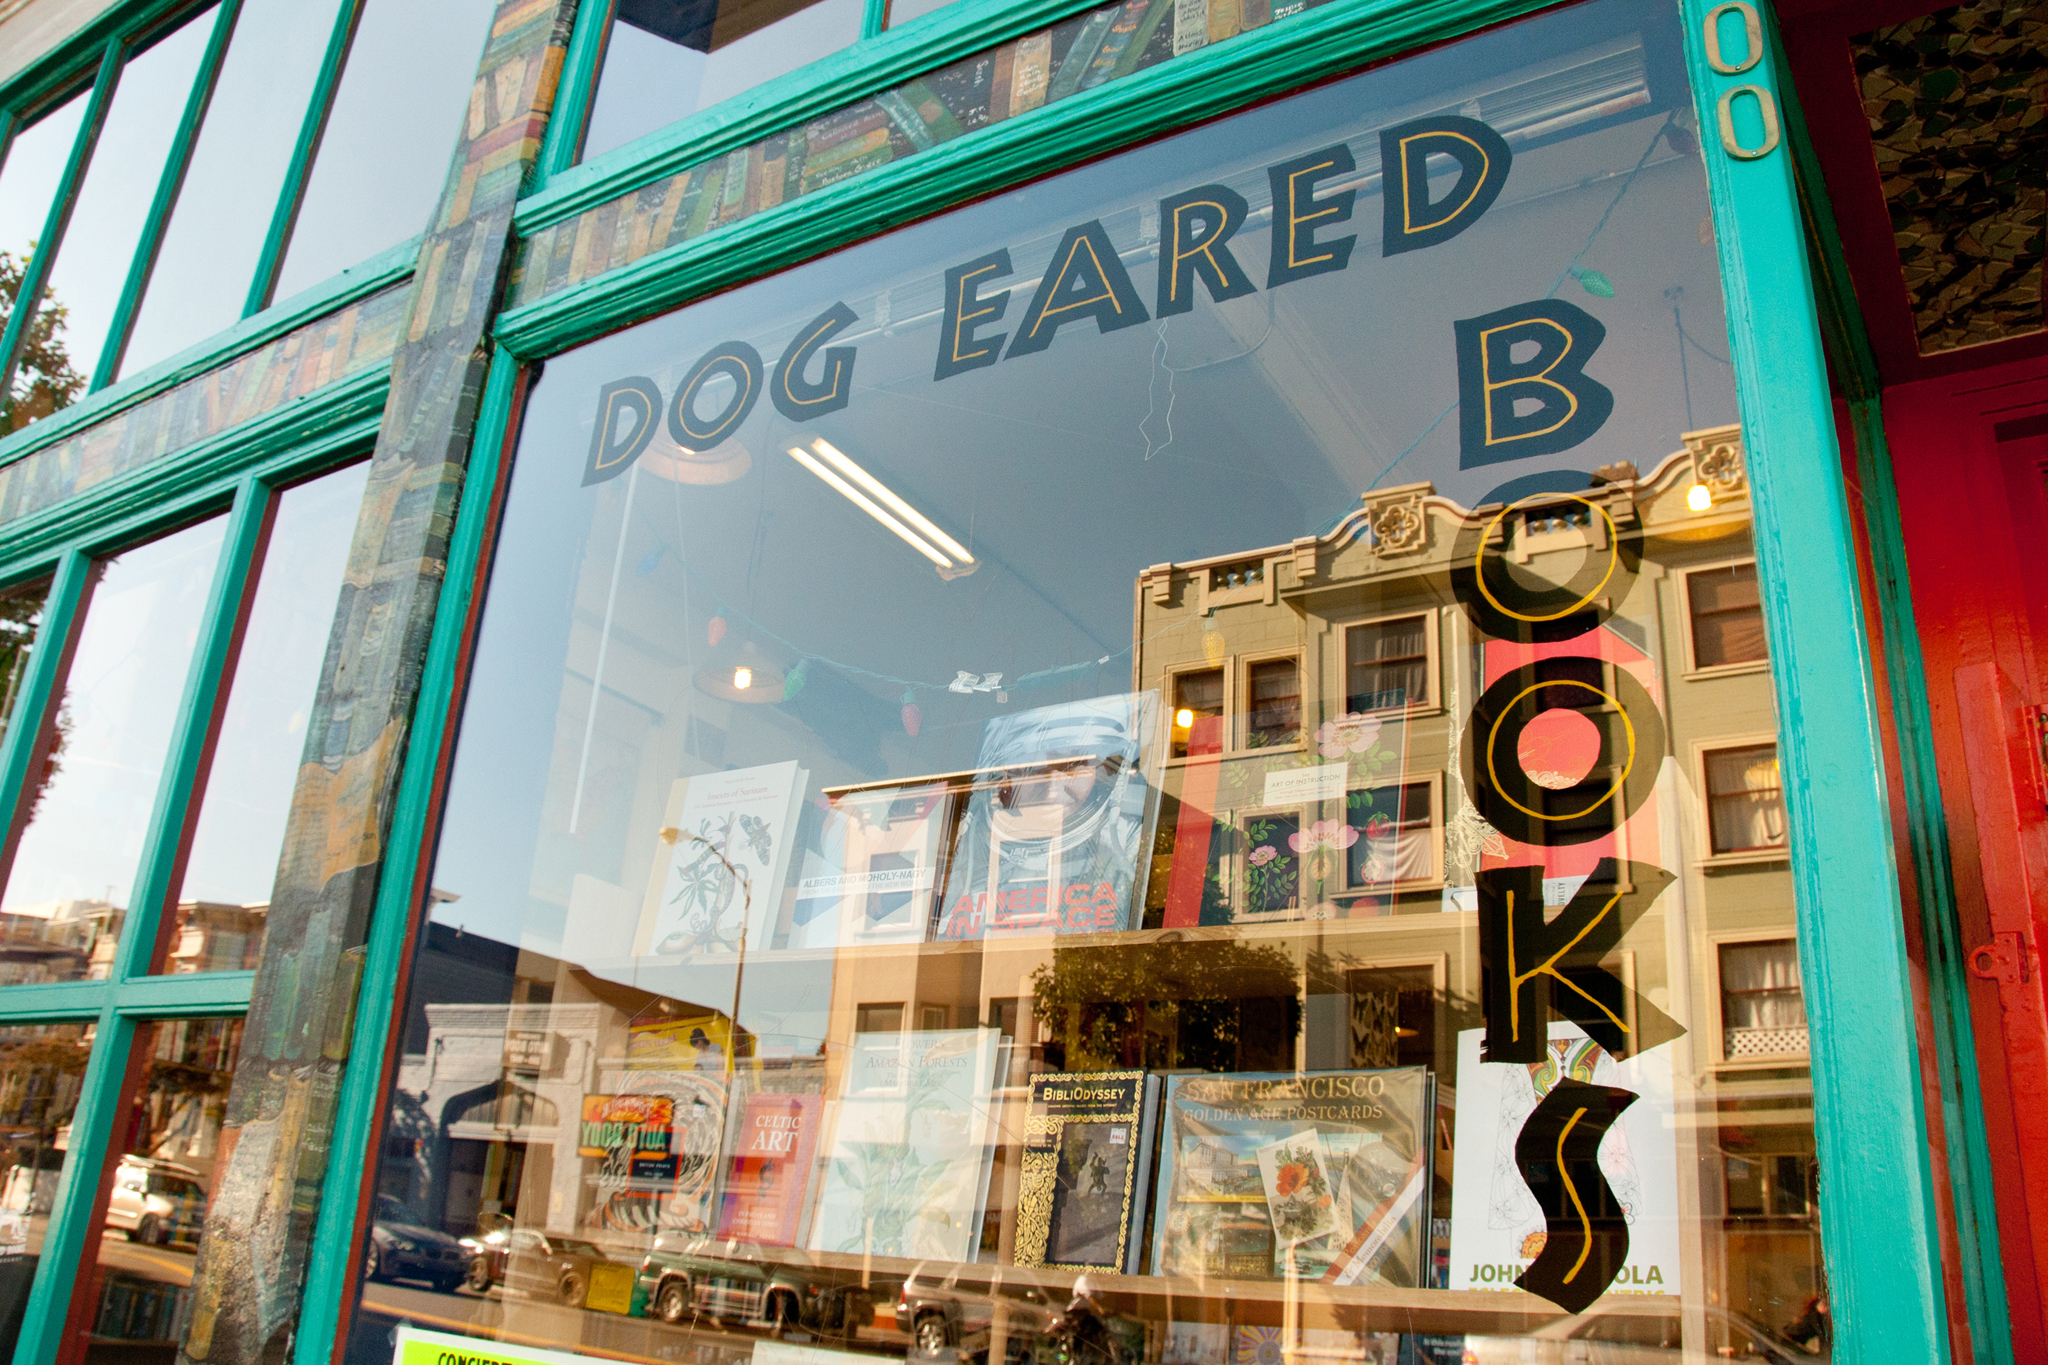 Dog Eared Books